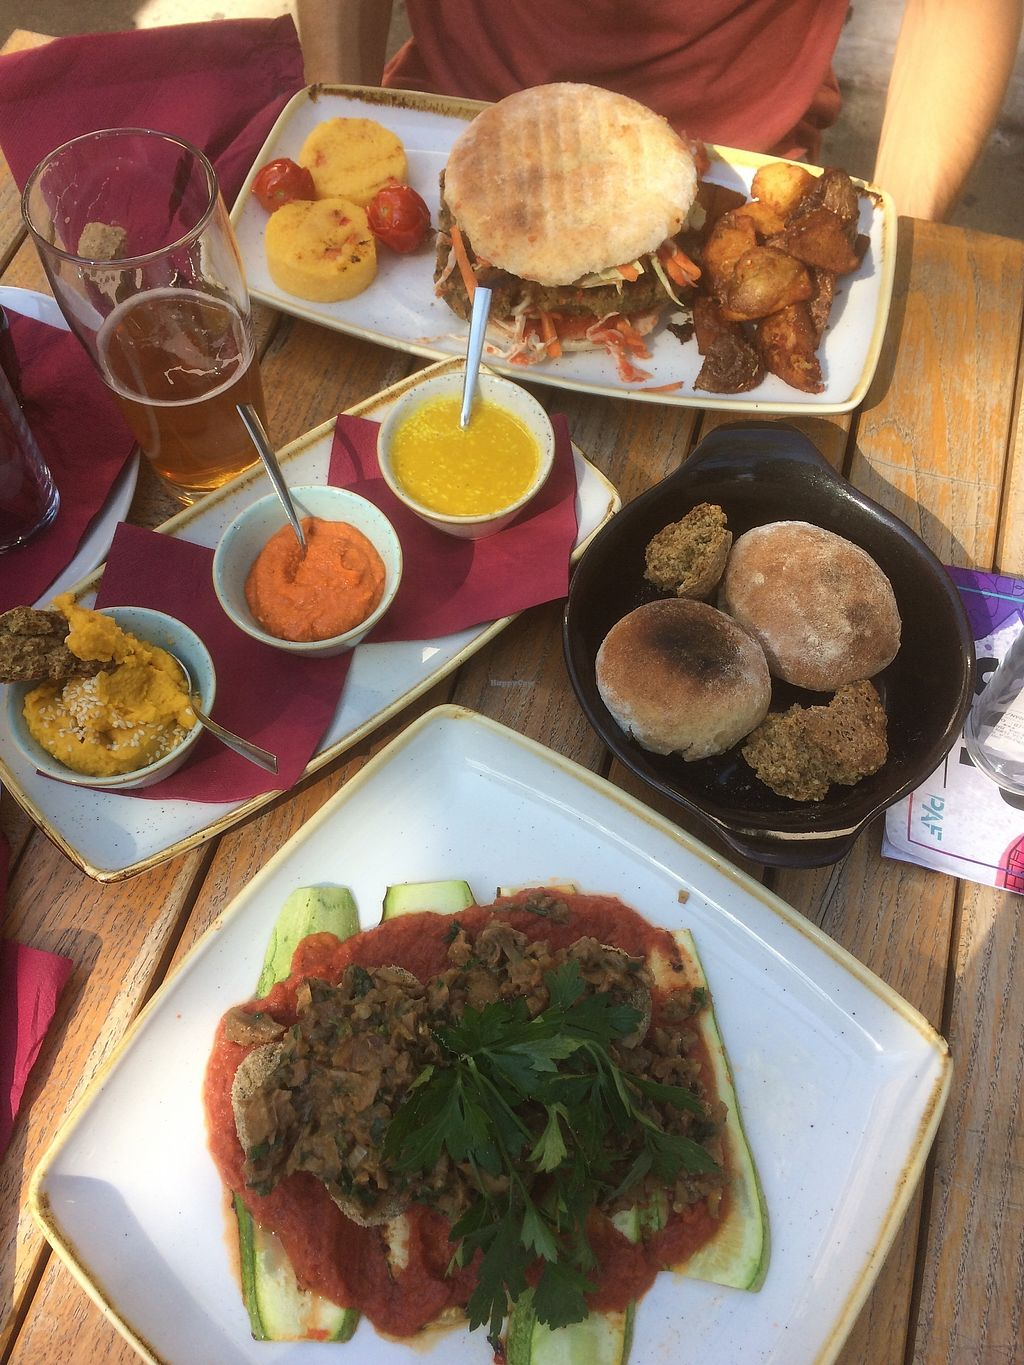 "Photo of Culture Club Strudla  by <a href=""/members/profile/Seagullonbicycle"">Seagullonbicycle</a> <br/>vegan burger and falafel with 3 hummuses <br/> September 18, 2017  - <a href='/contact/abuse/image/96490/305746'>Report</a>"